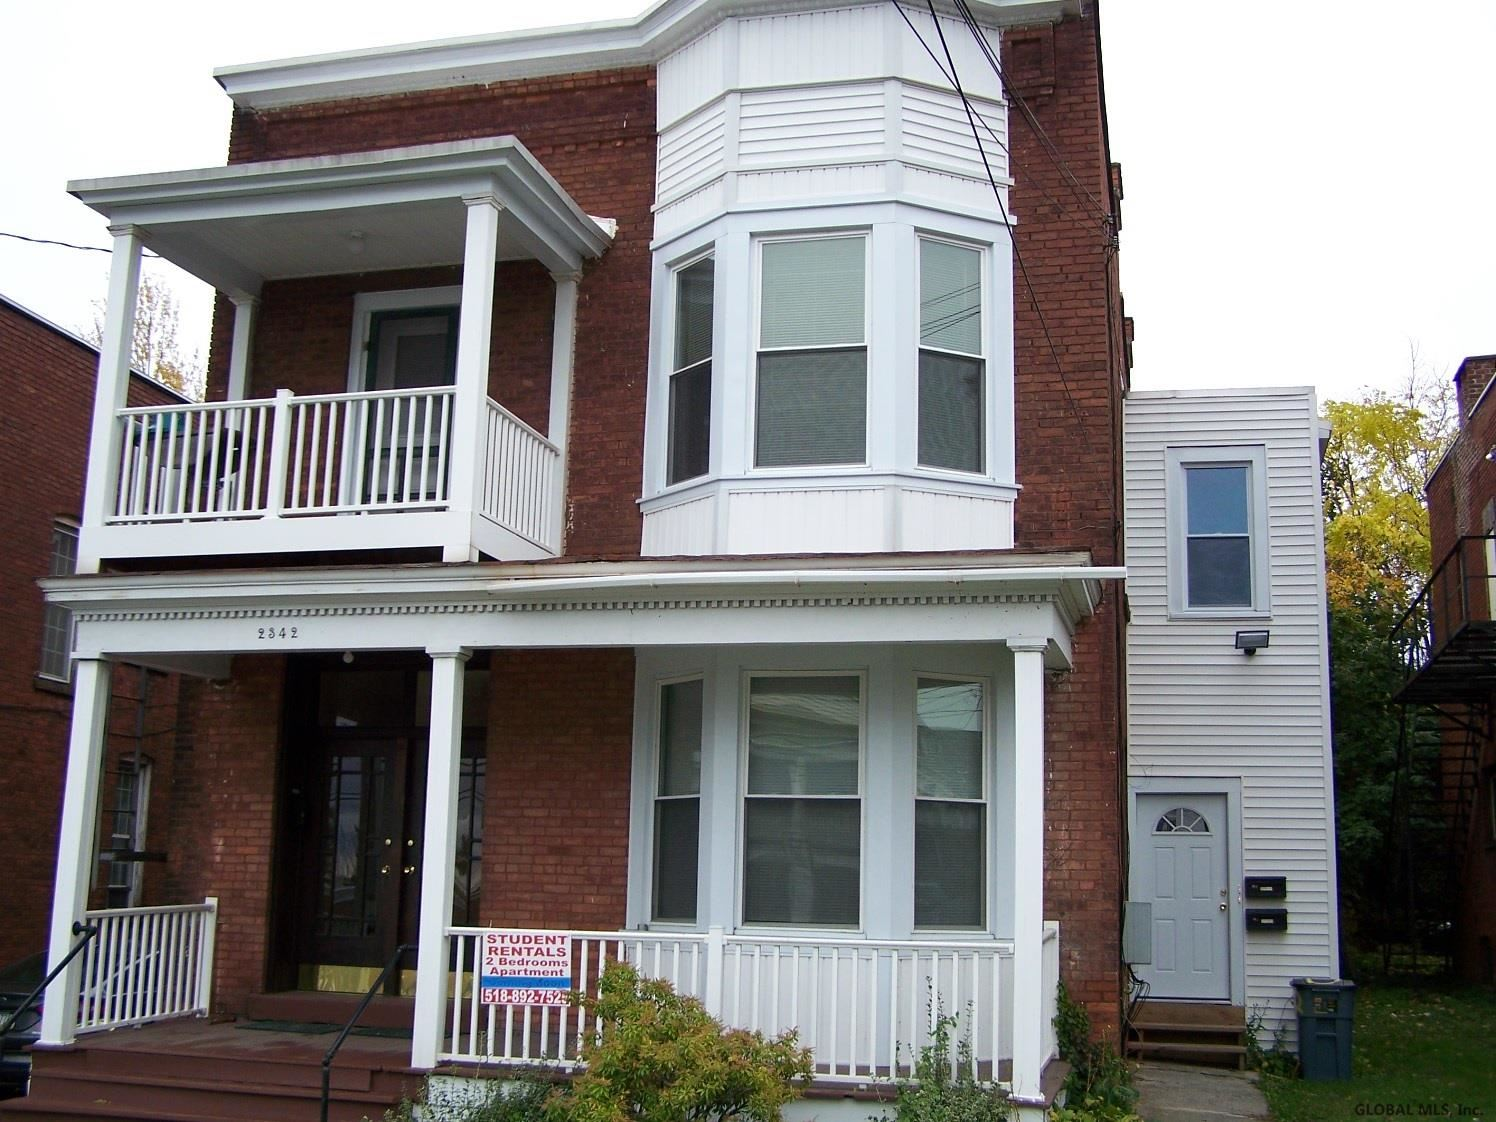 2342 15TH ST, Troy, NY 12180 - #: 202111906